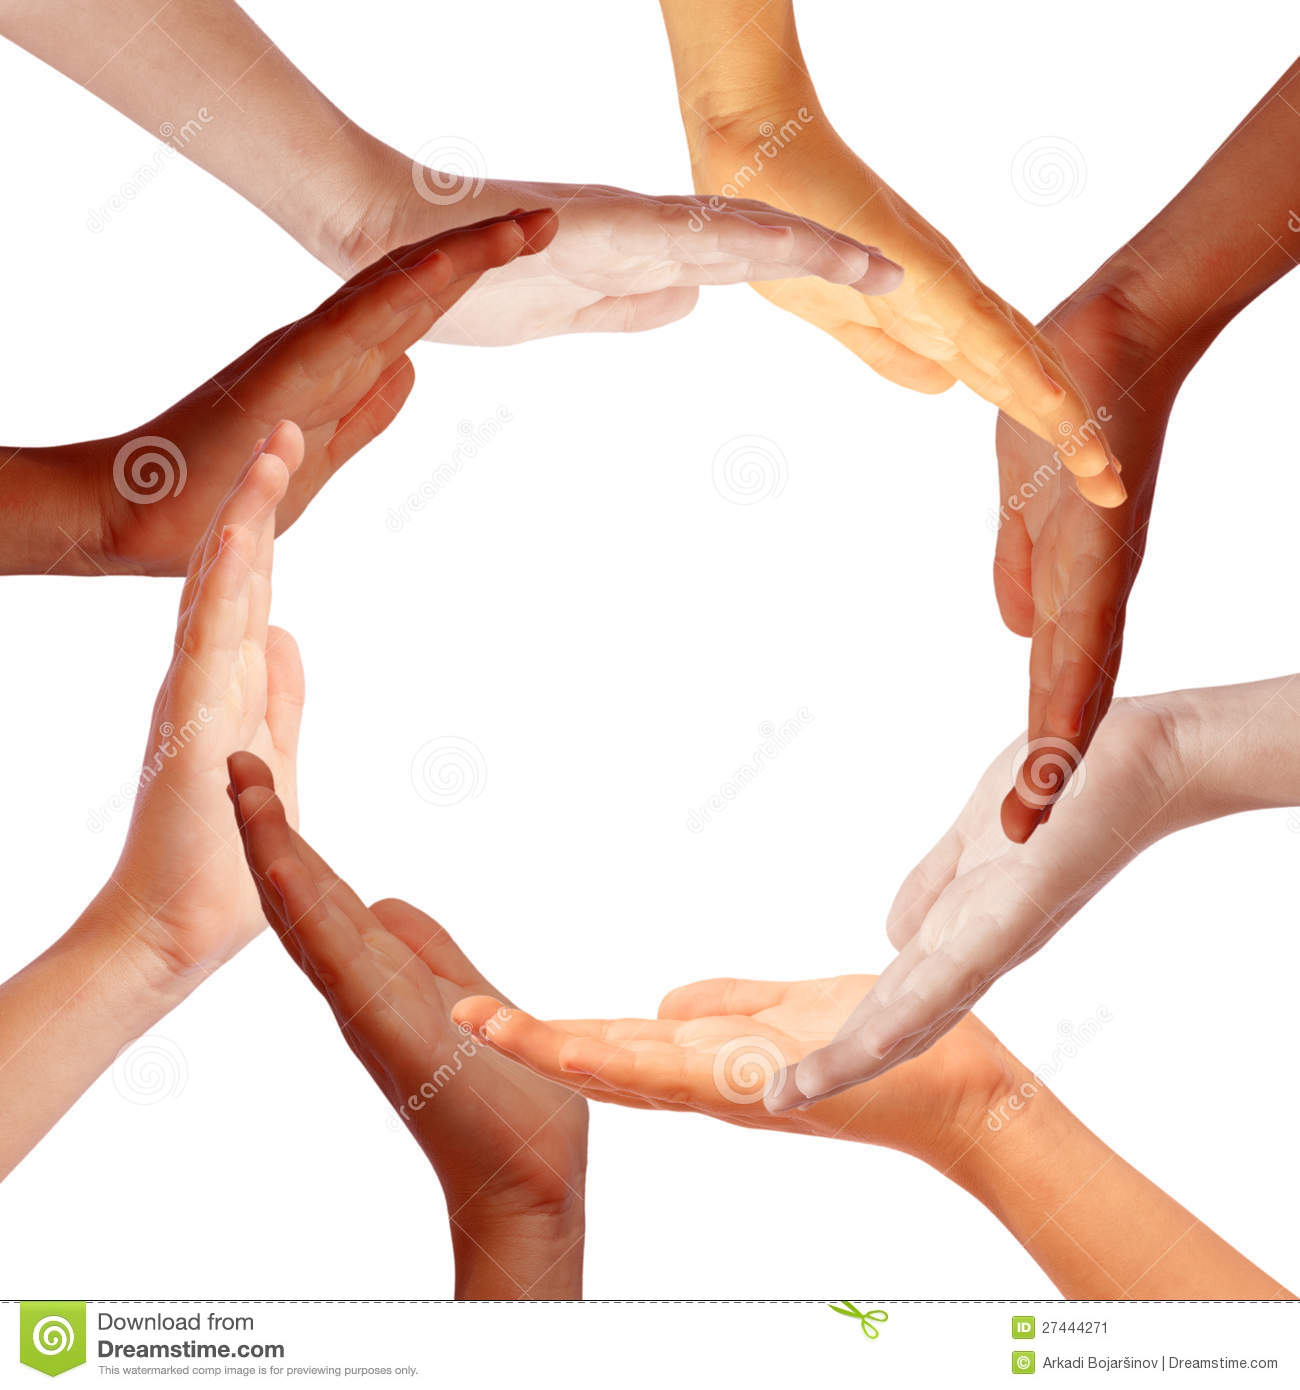 More similar stock images of ` Hands circle `